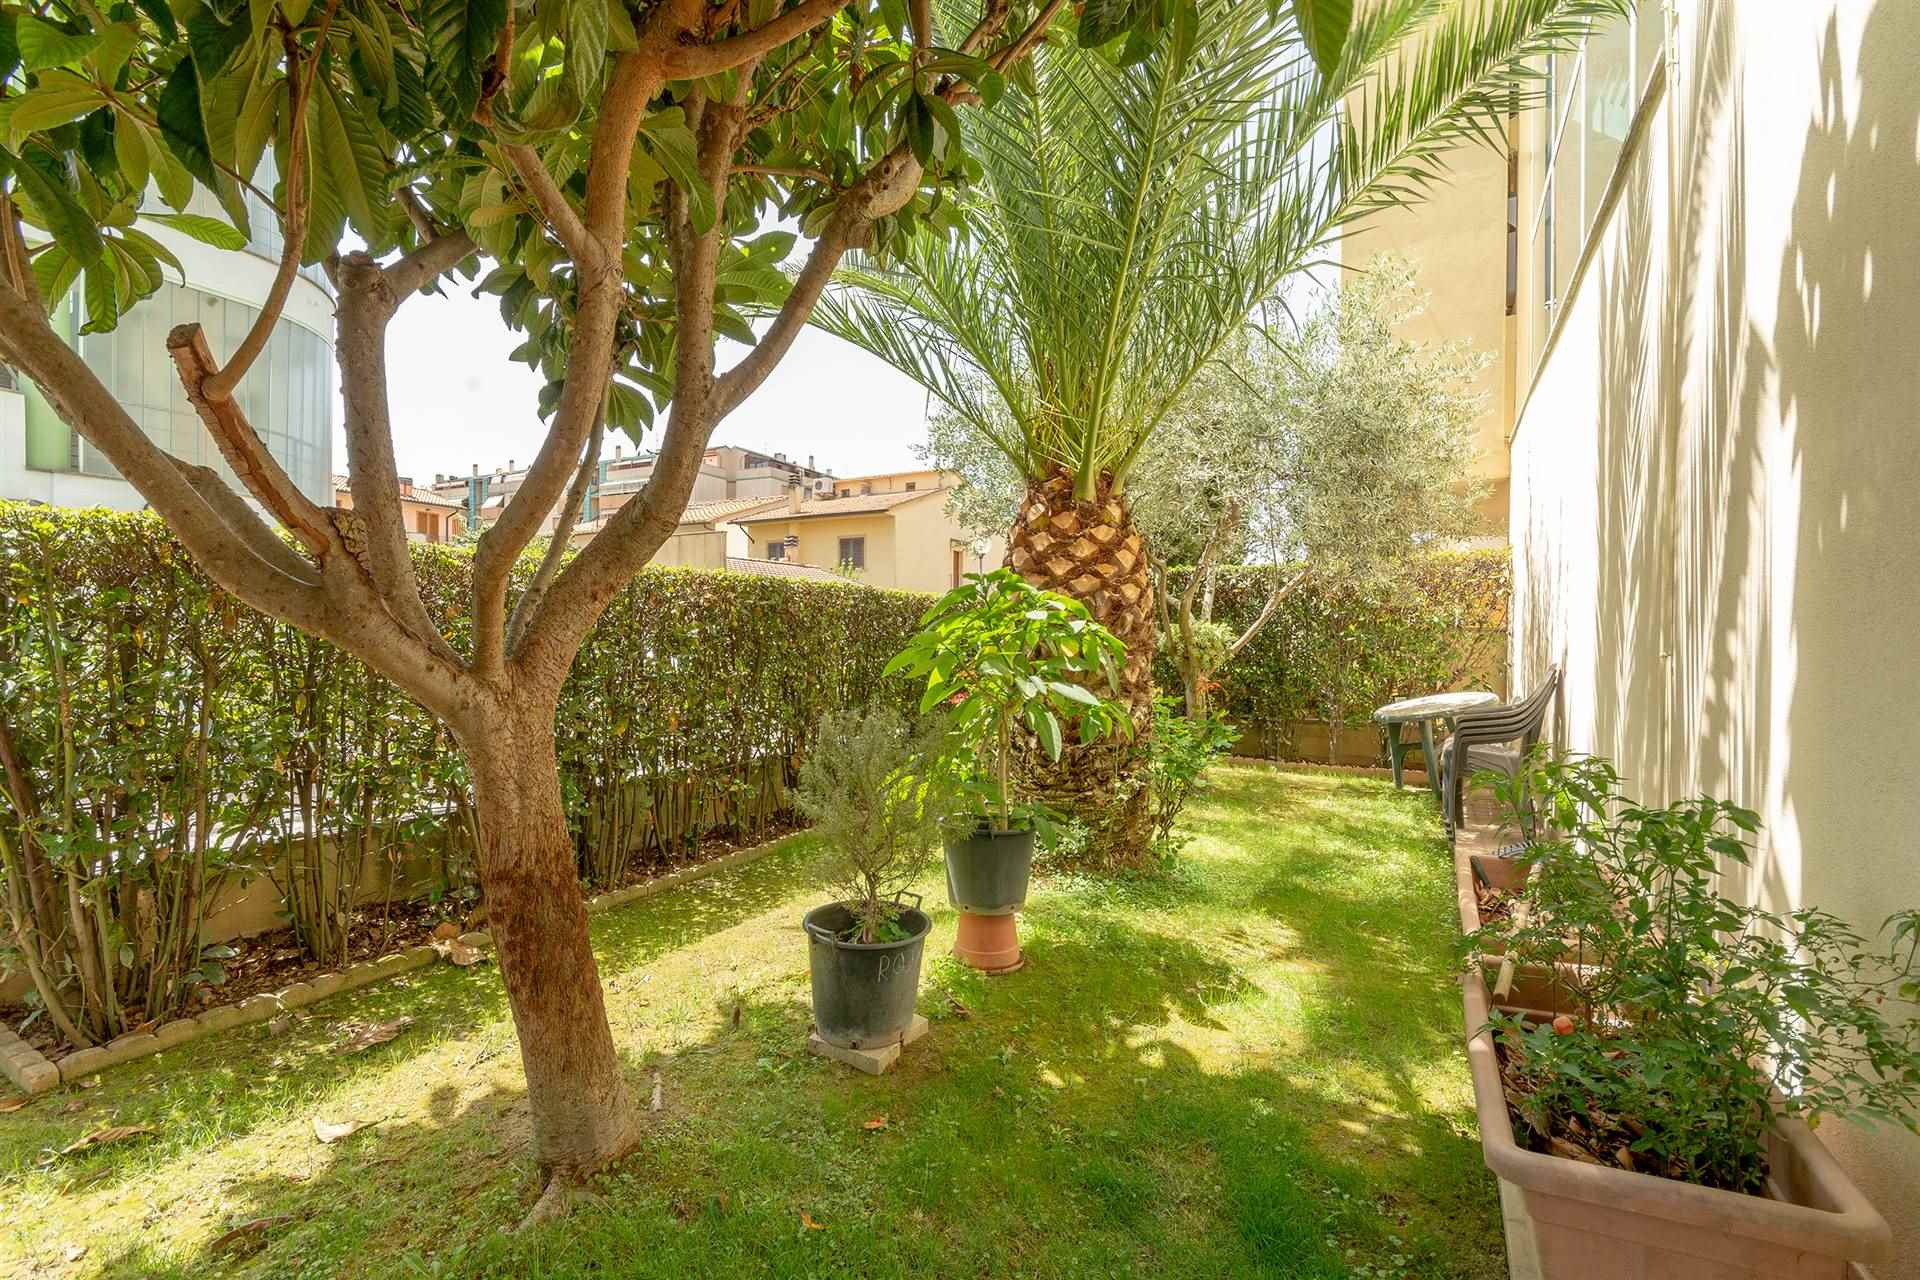 SAN LORENZO, CAMPI BISENZIO, Apartment for sale, Excellent Condition, Heating Individual heating system, Energetic class: G, placed at Ground on 3,